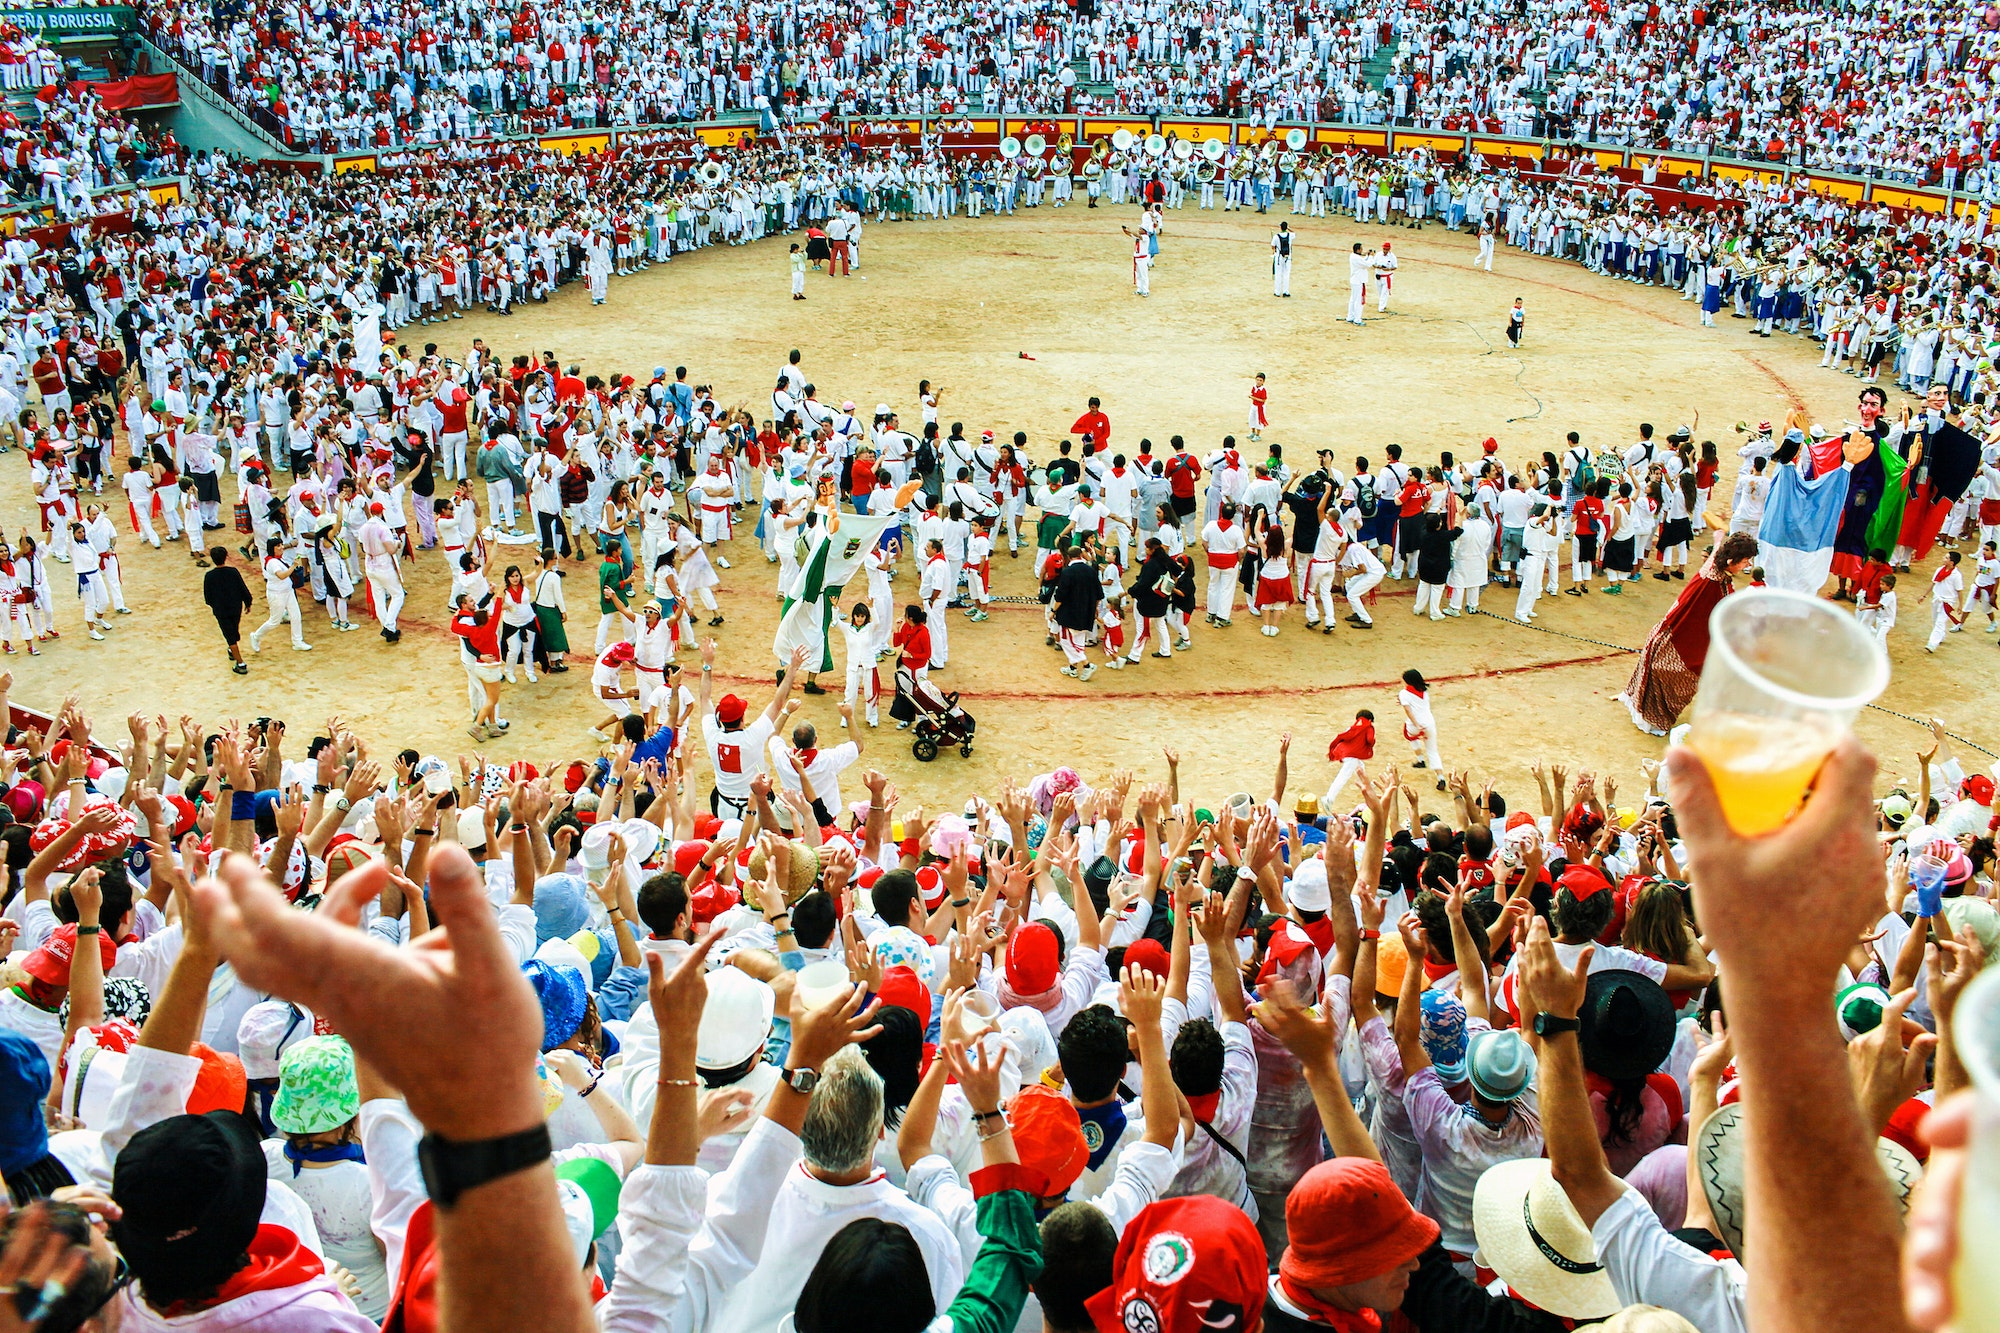 Spain's San Fermín festival attracts approximately 1 million visitors each year between July 6 and 14.